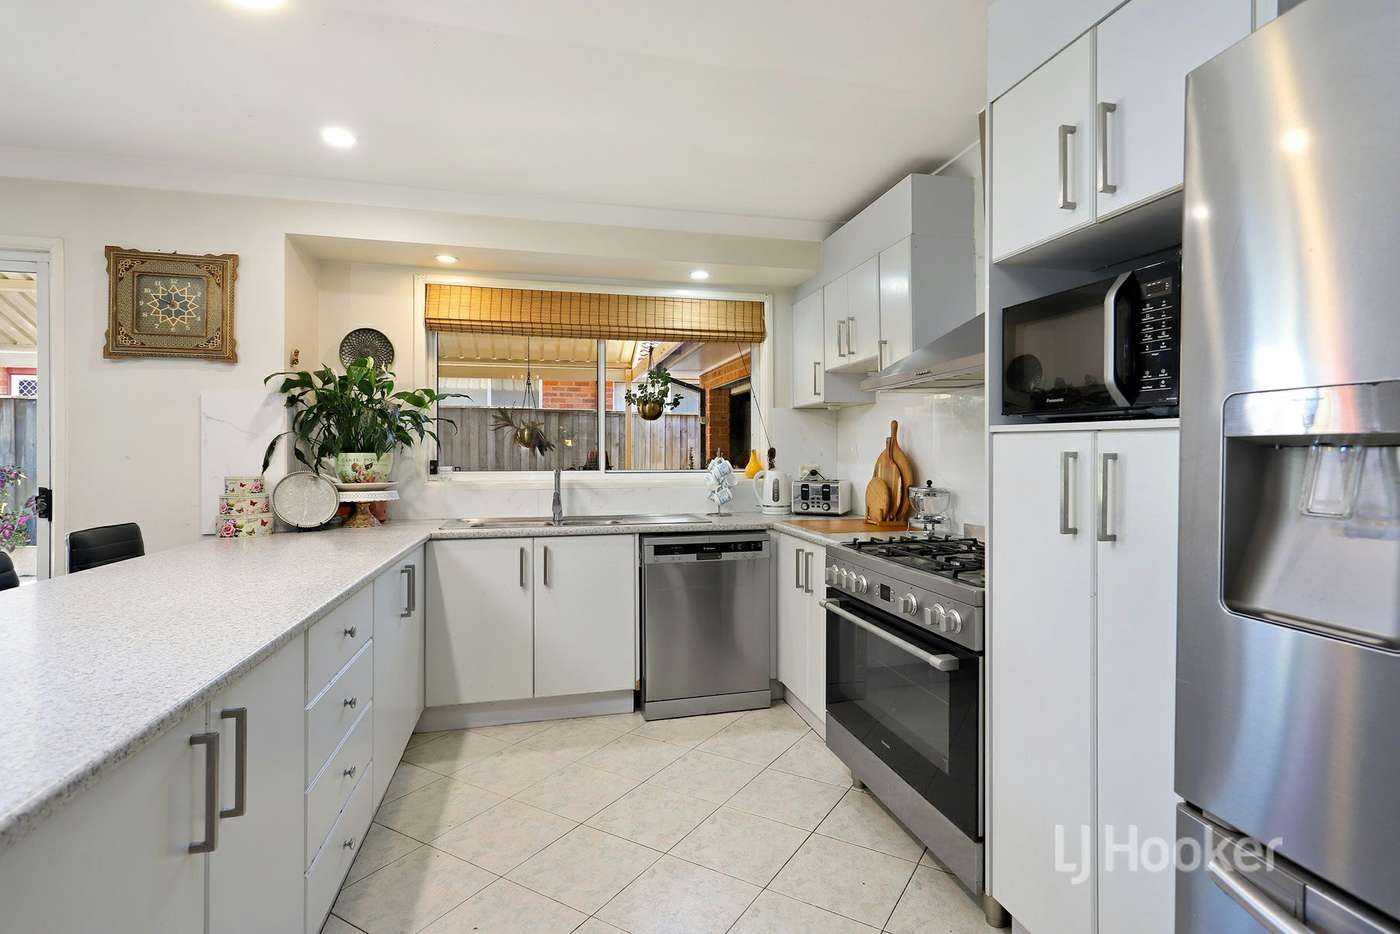 Sixth view of Homely house listing, 188 Meurants Lane, Glenwood NSW 2768